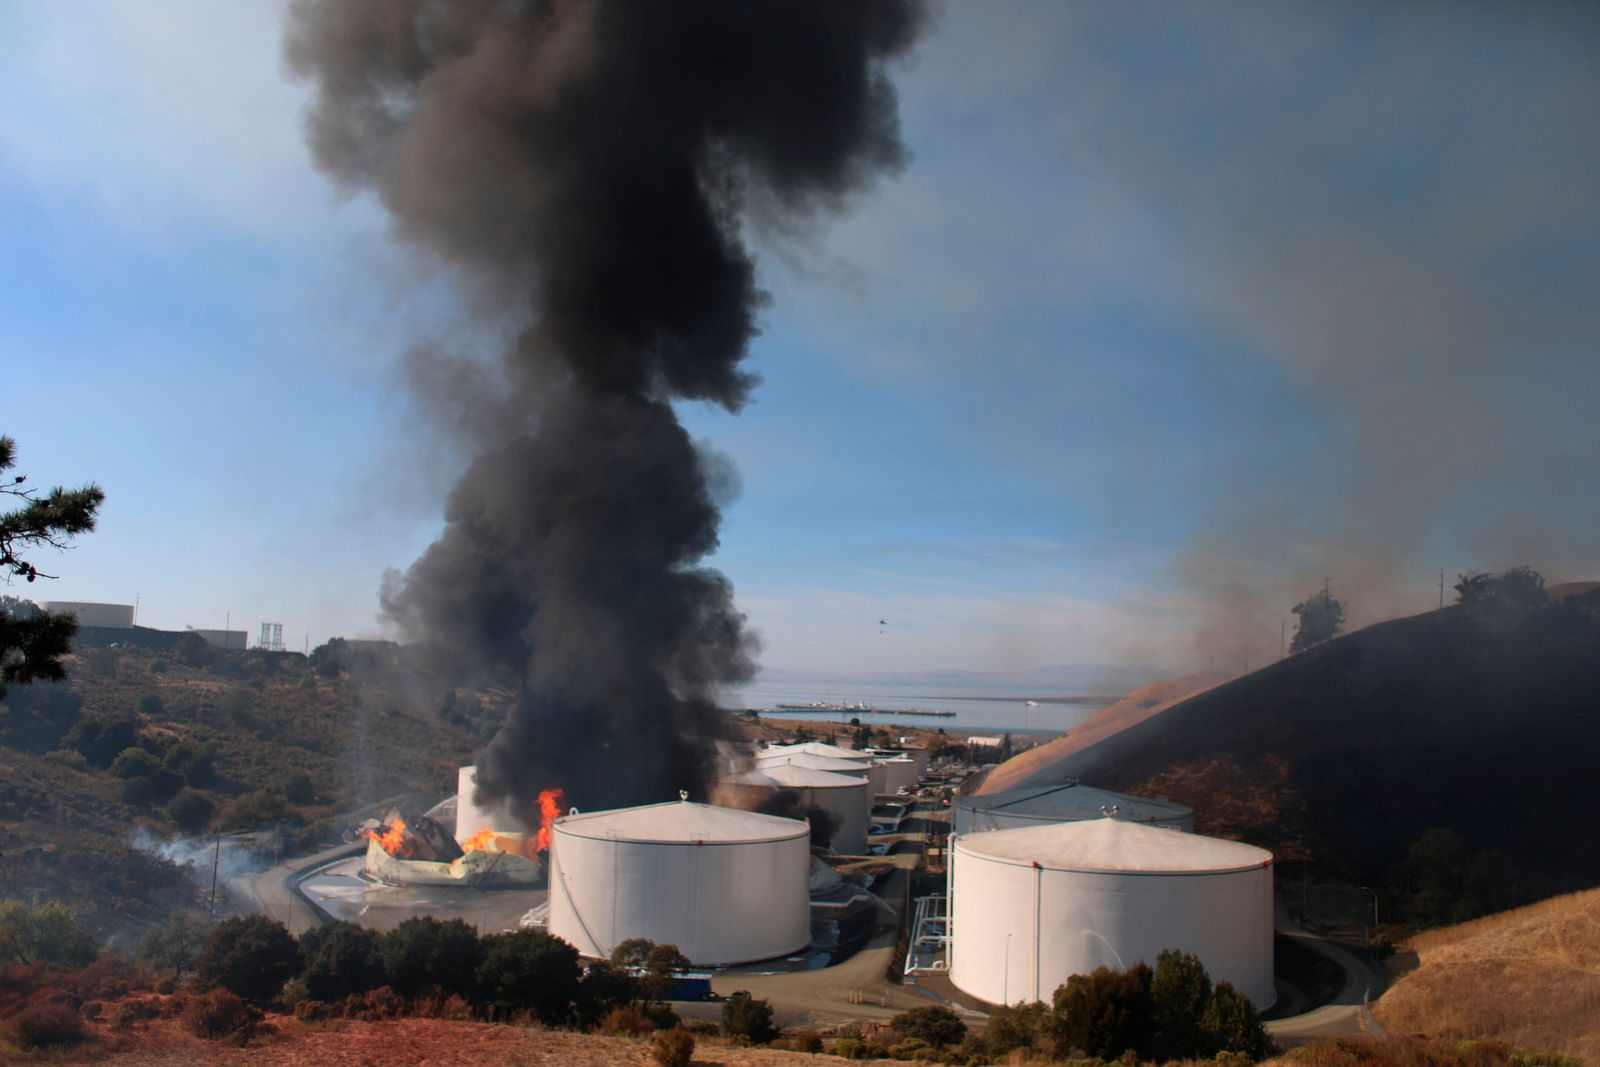 "A fire broke out at NuStar Energy LP facility in Crockett, Calif., Tuesday, Oct. 15, 2019. The Contra Costa Health Department posted on Twitter that there was a ""hazardous materials emergency"" in the towns of Crockett, and Rodeo. The department urged residents to stay inside and close all windows and doors. (Anda Chu/San Jose Mercury News via AP)"